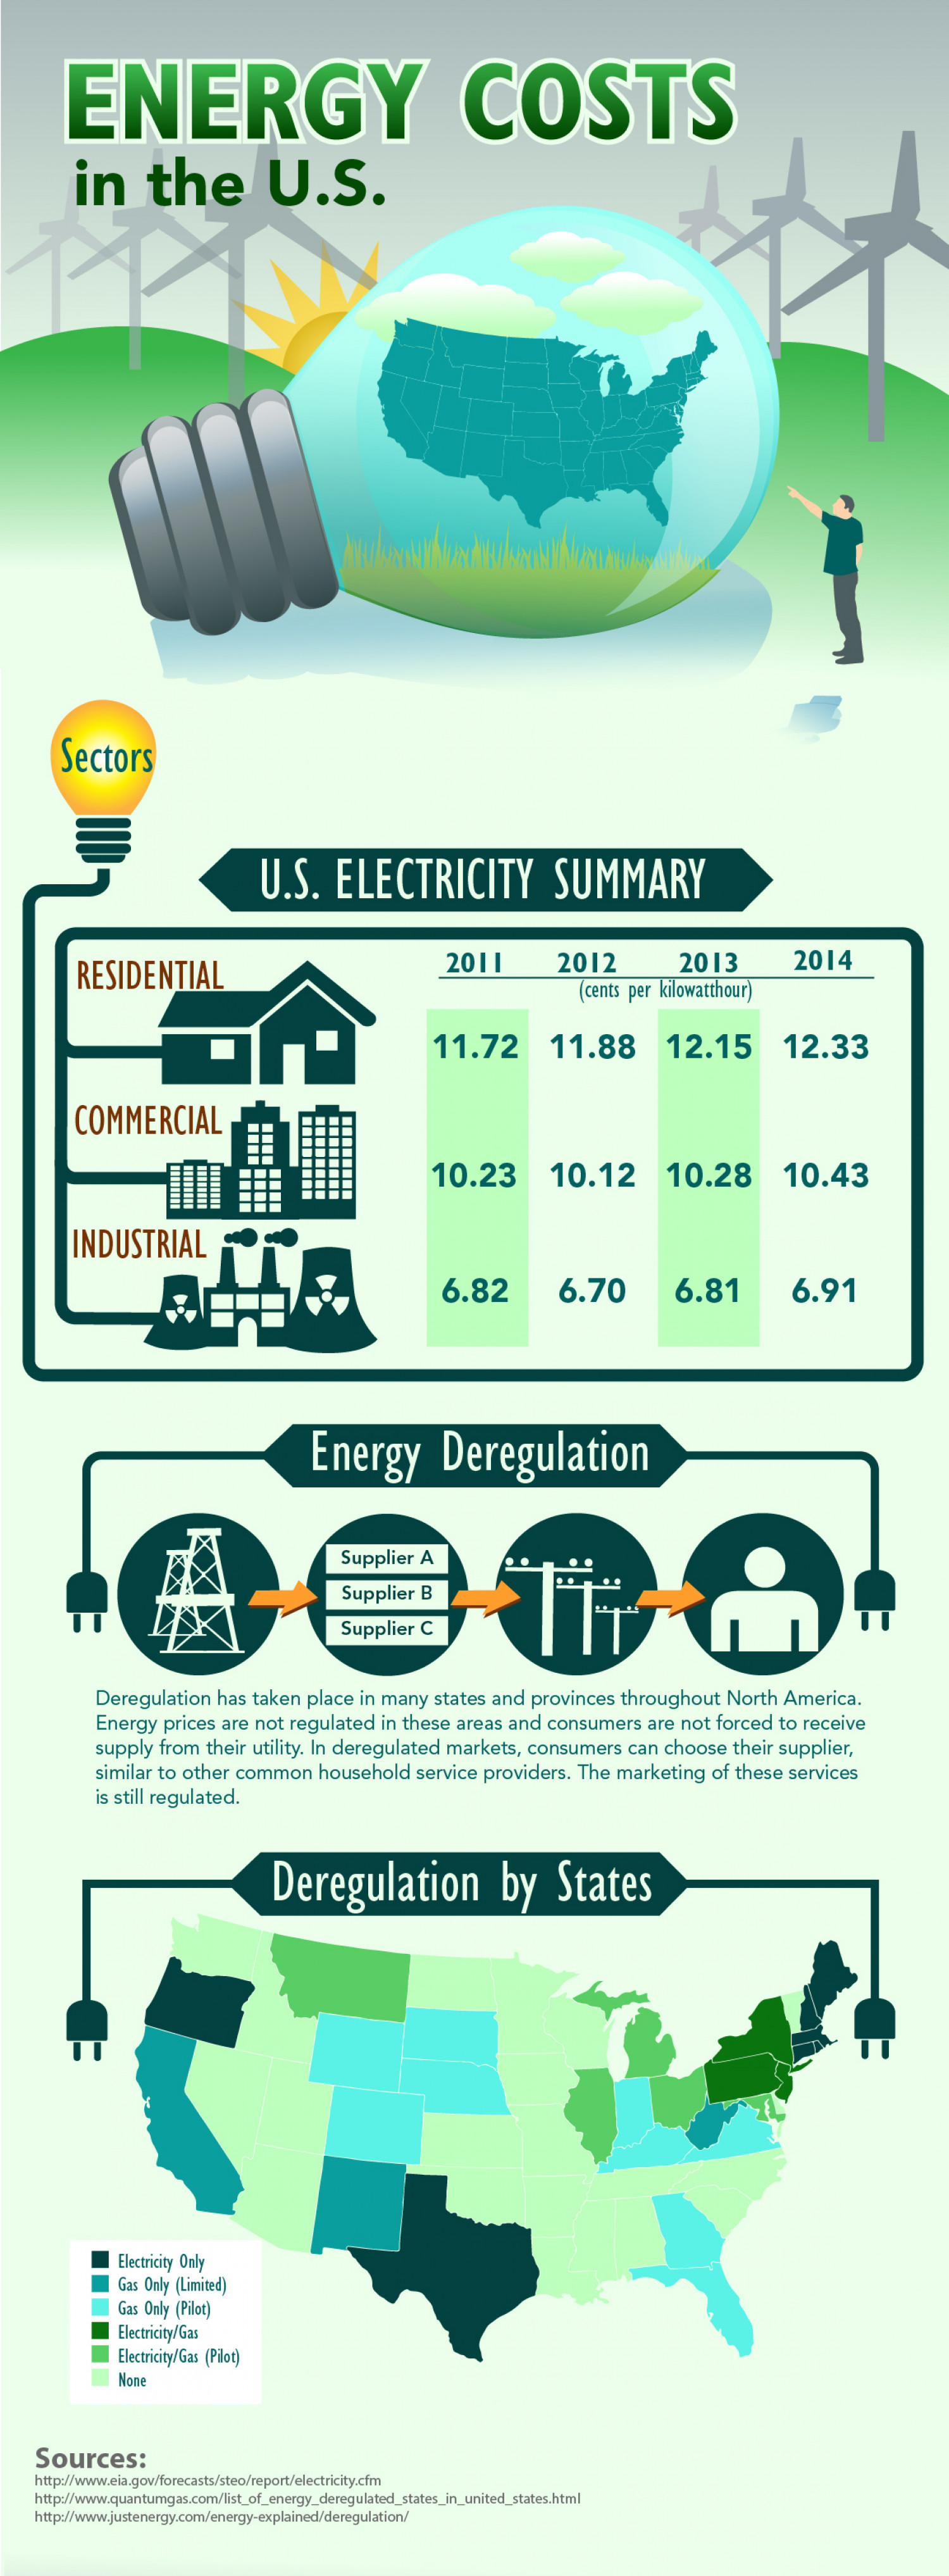 Energy Costs in the U.S. Infographic